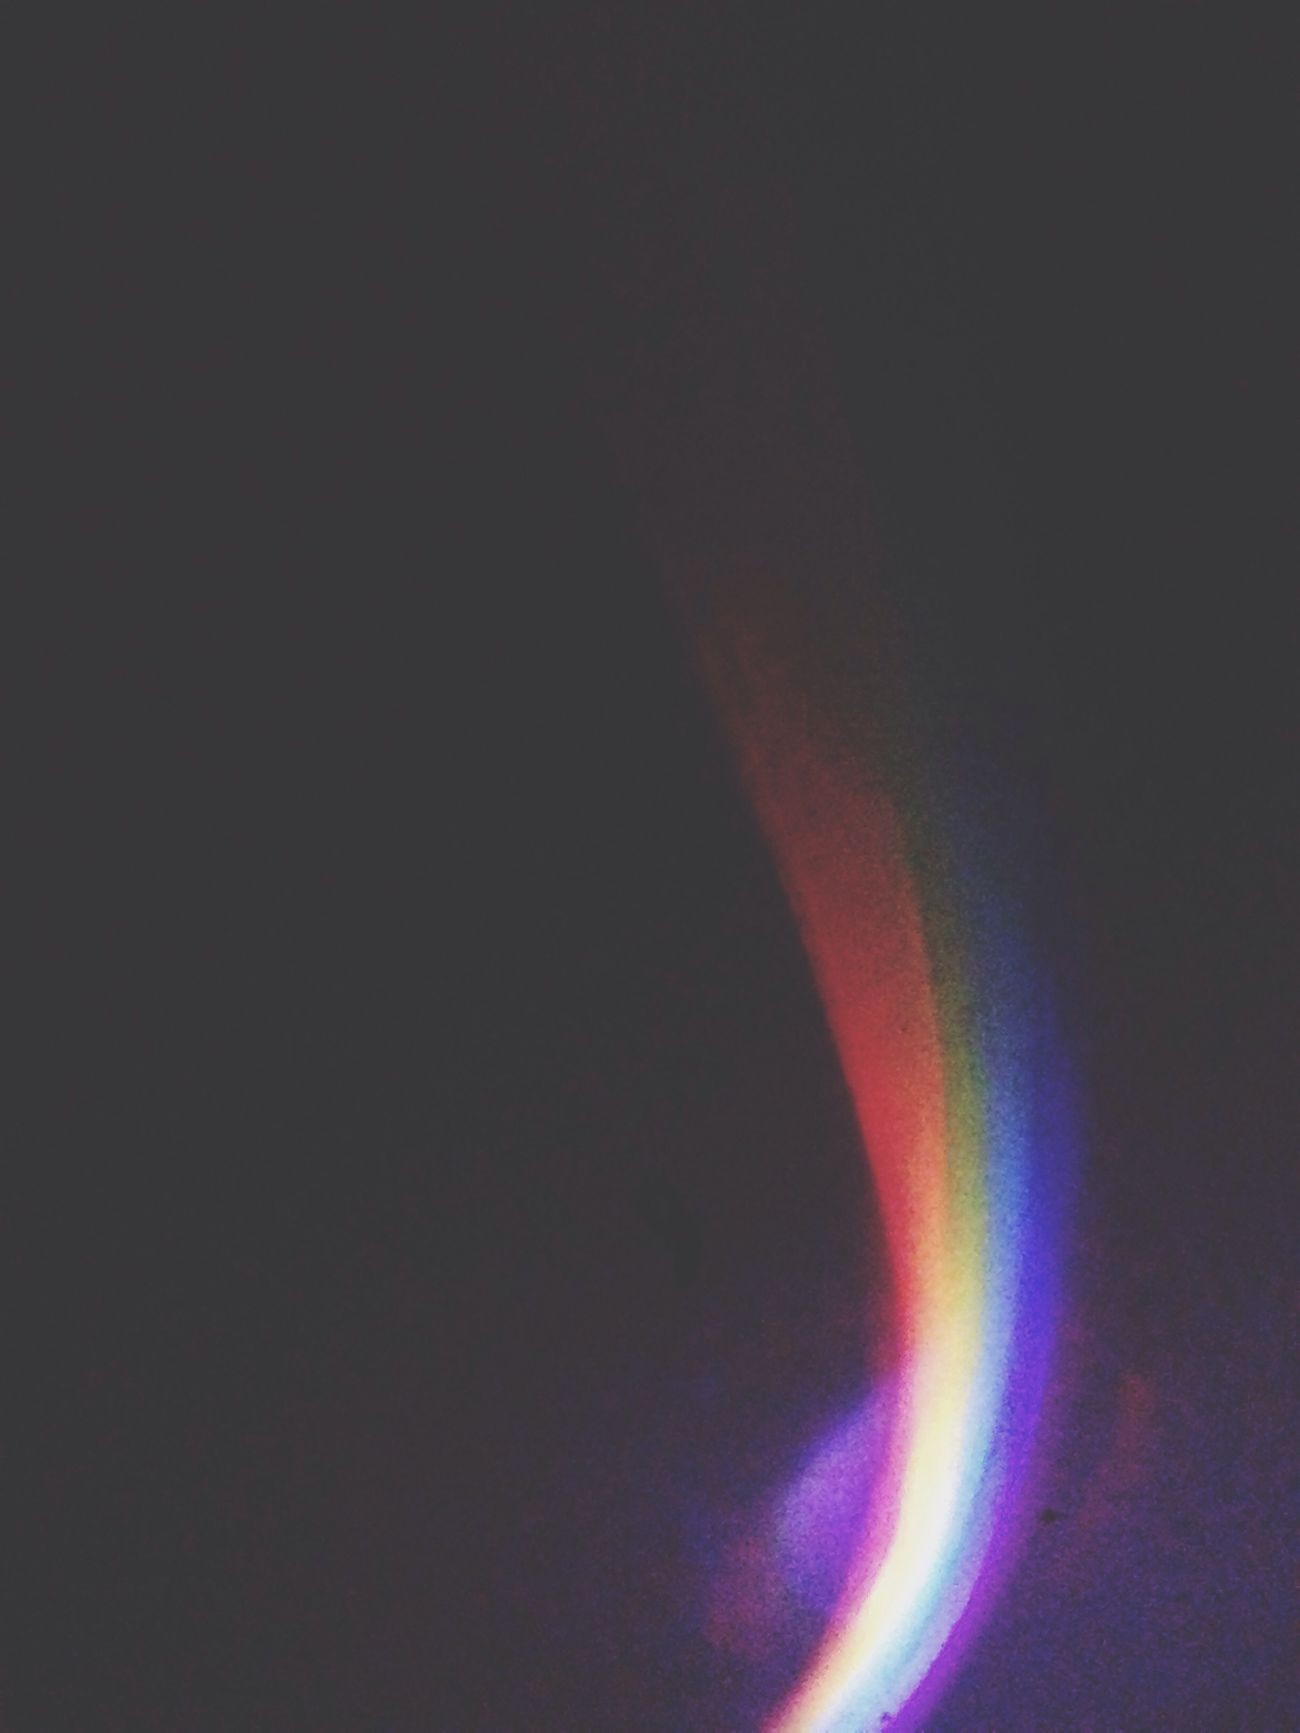 Have Little Rainbow in my room 🌈🌈🌈 Rainbow Rainbow Colors So Adorable Nightlights